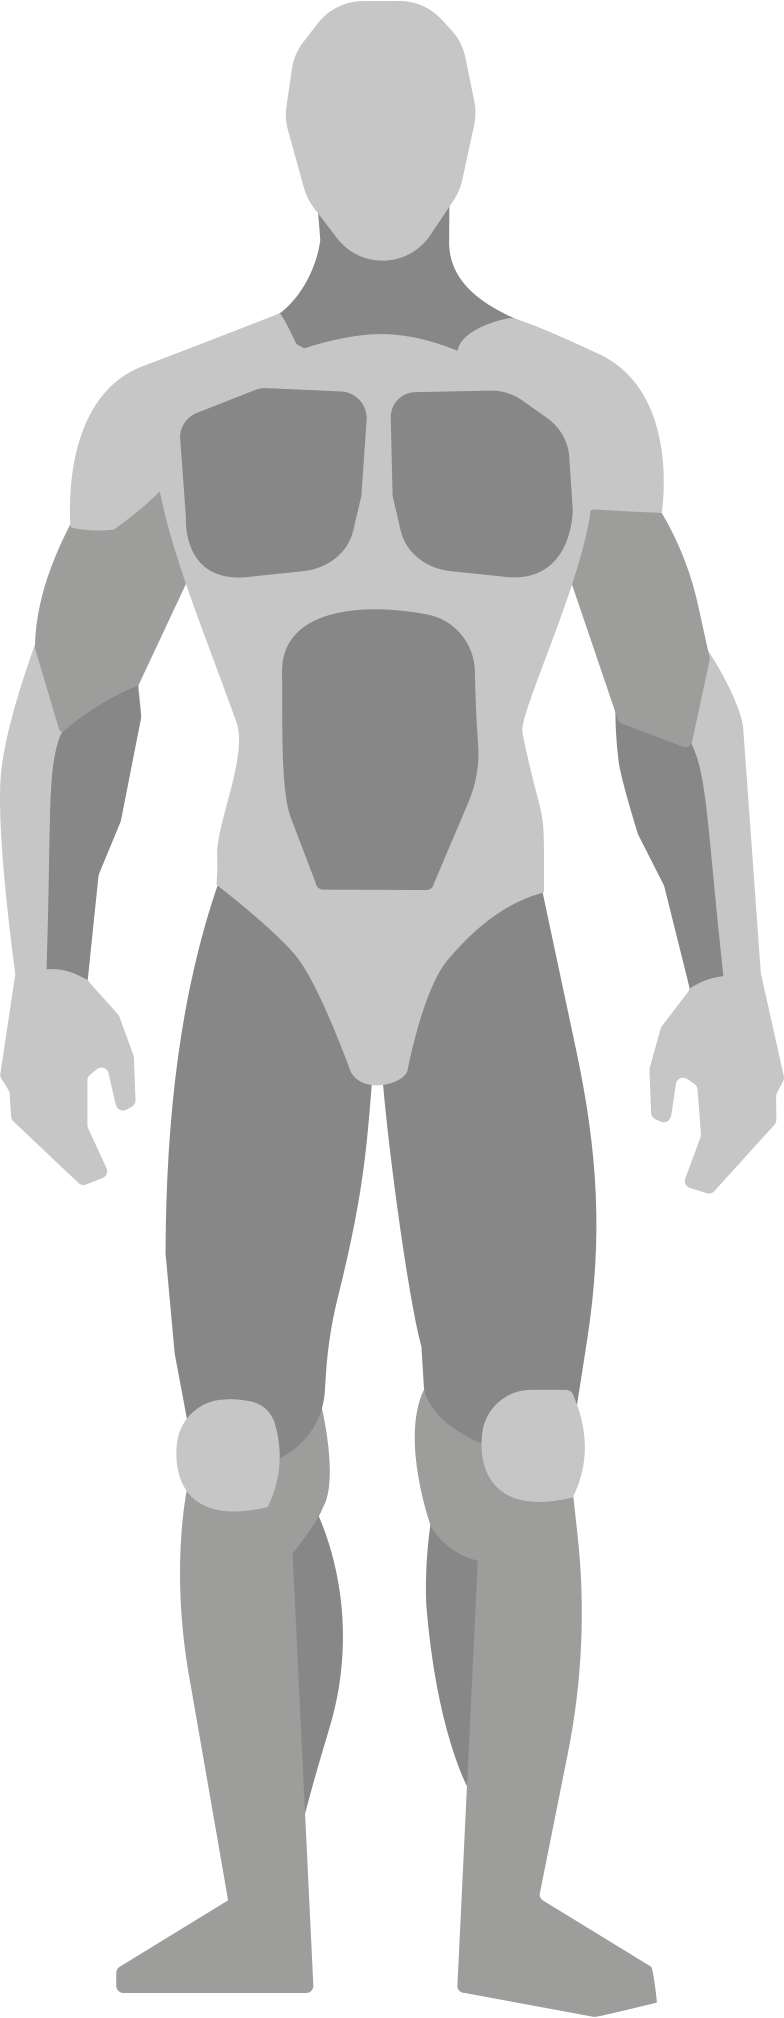 style e diagram of the human body Vector images in PNG and SVG | Icons8 Illustrations